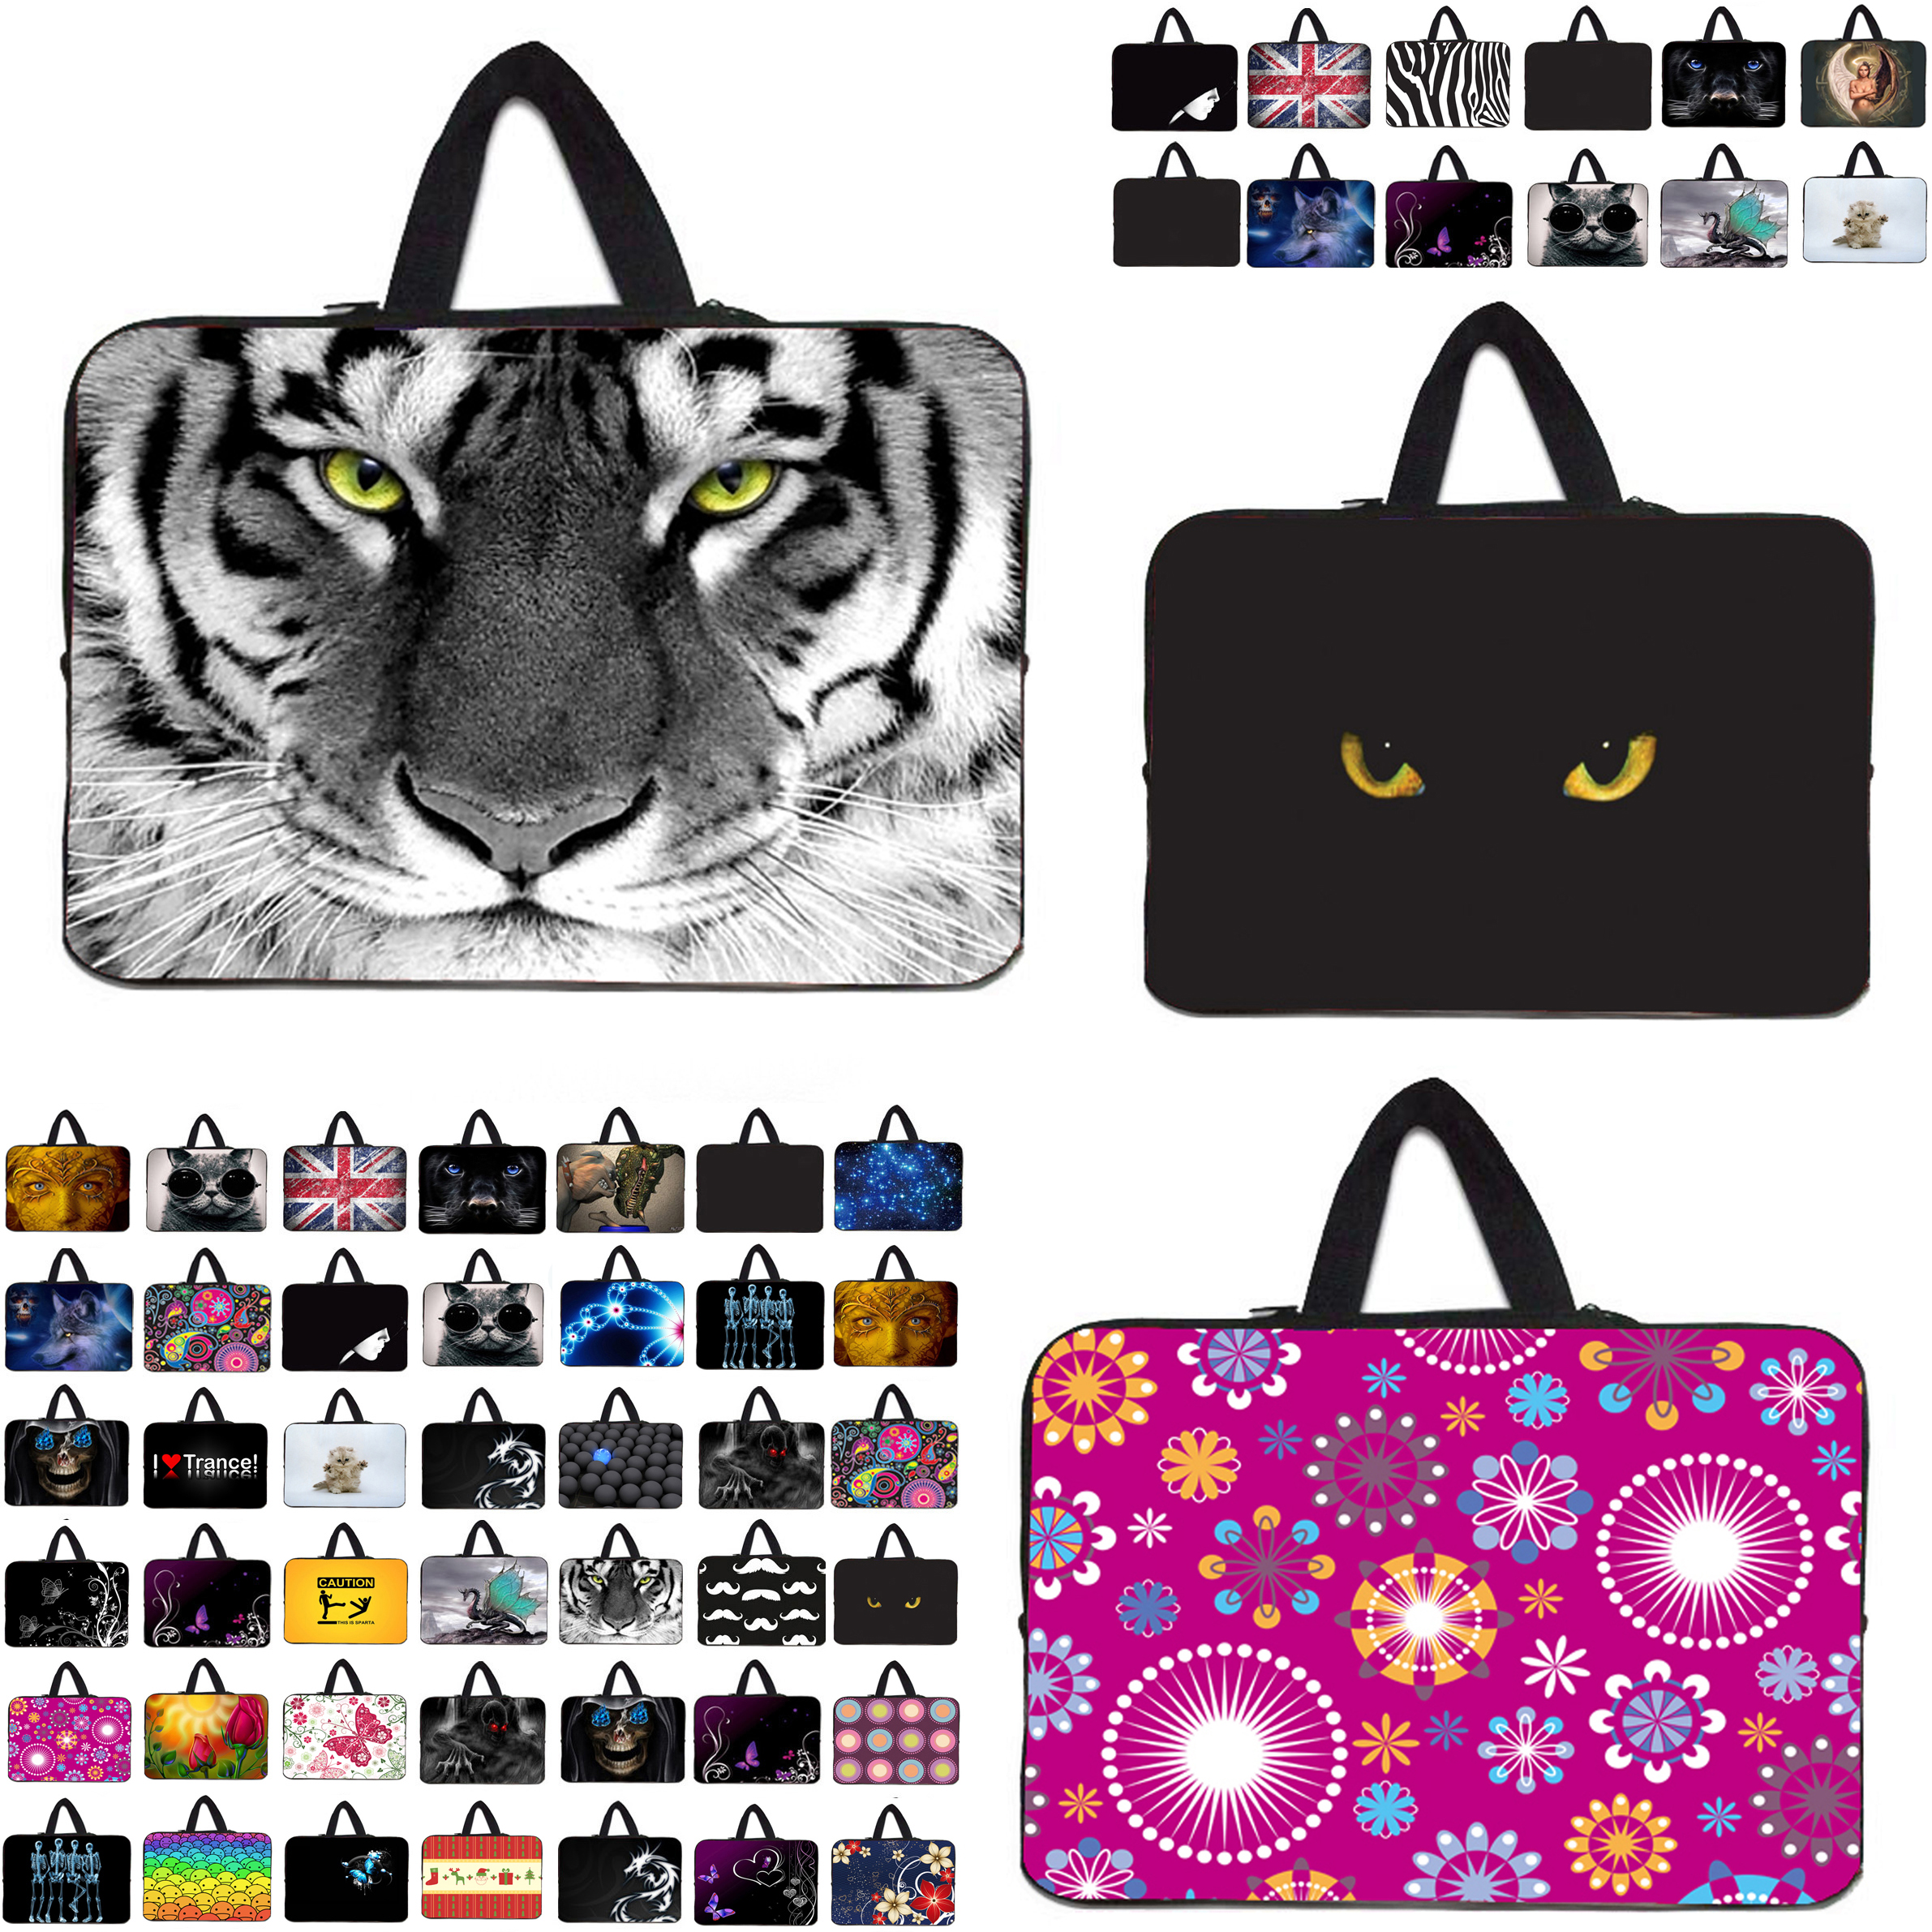 7 10 12 13 14 15 17 Neoprene Laptop Bag Netbook Sleeve Handle Pouch For Notebook Computer Bag 13.3 15.4 17.3 For Macbook Toshiba(China (Mainland))